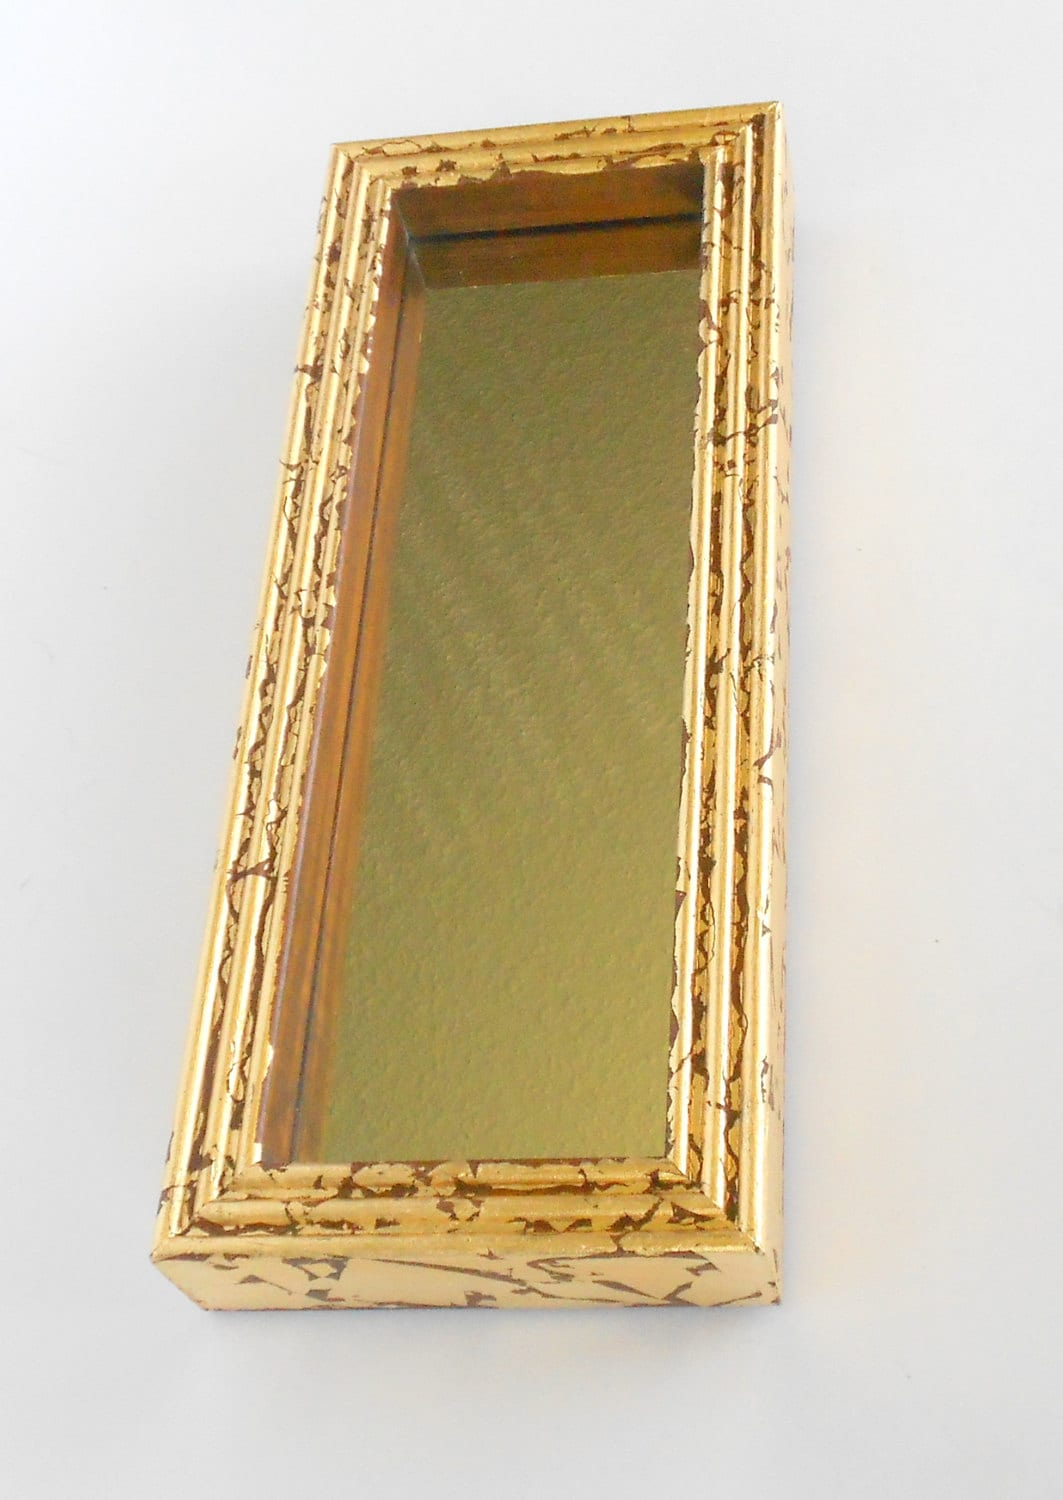 Wall mirror narrow mirror decorative wall for Narrow wall mirror decorative